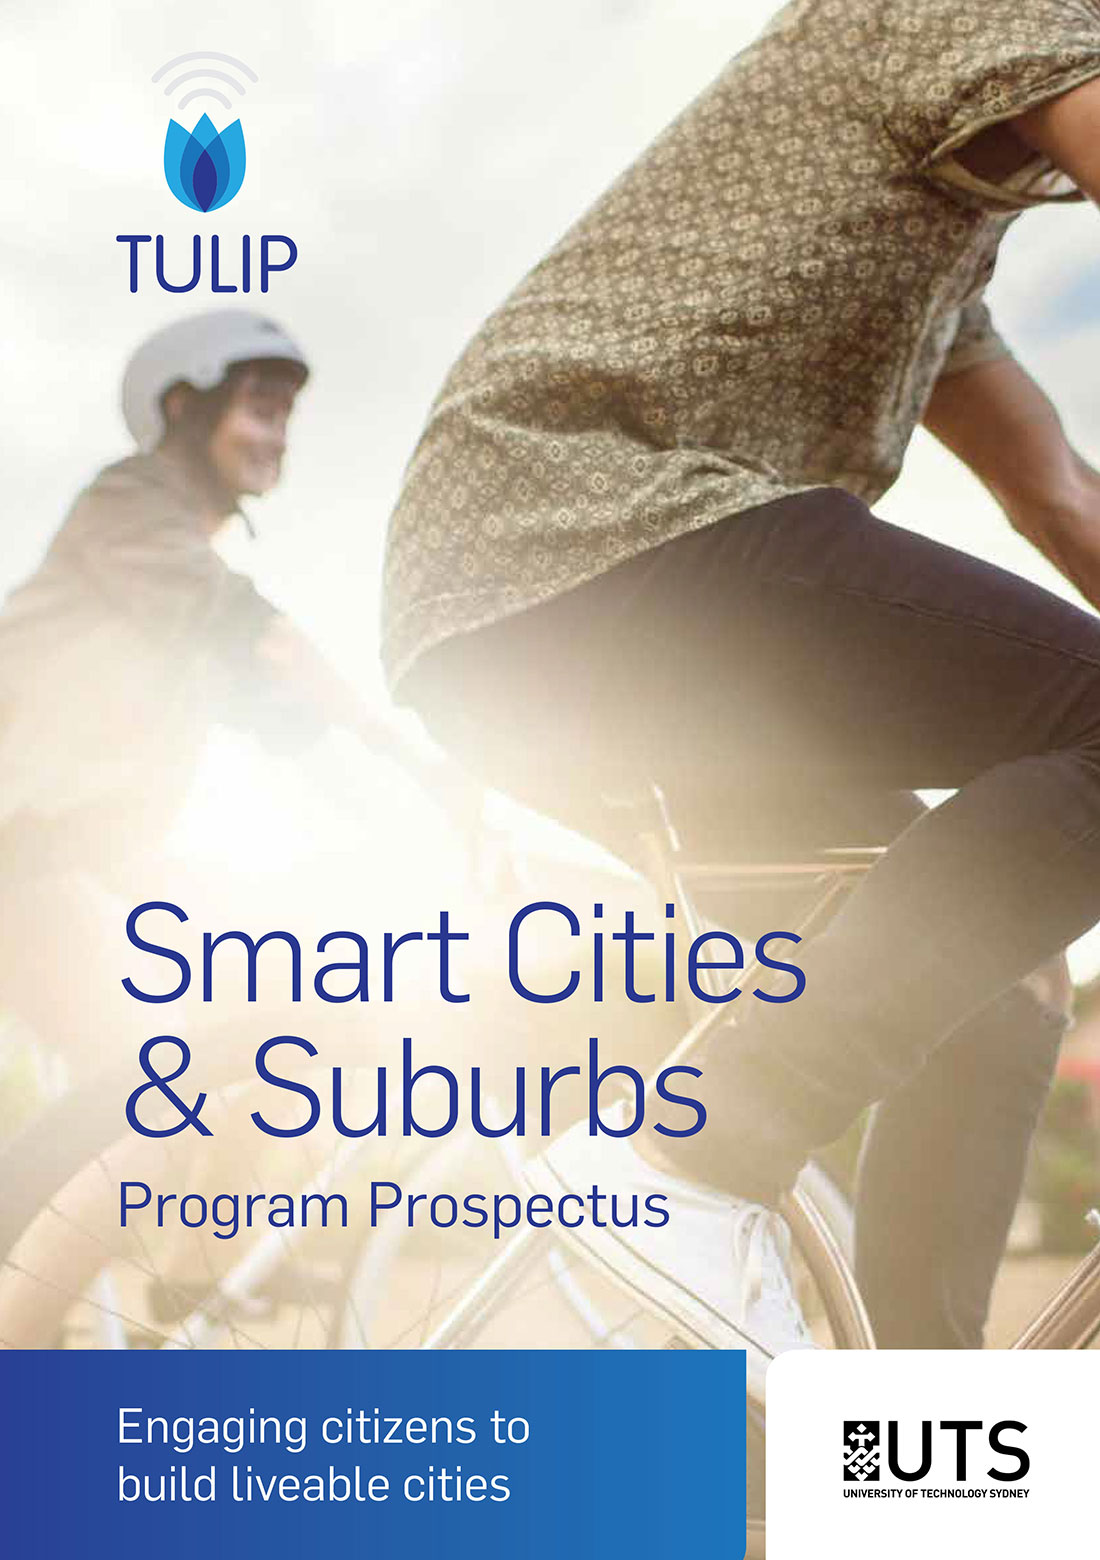 tulip-brochure-cover2